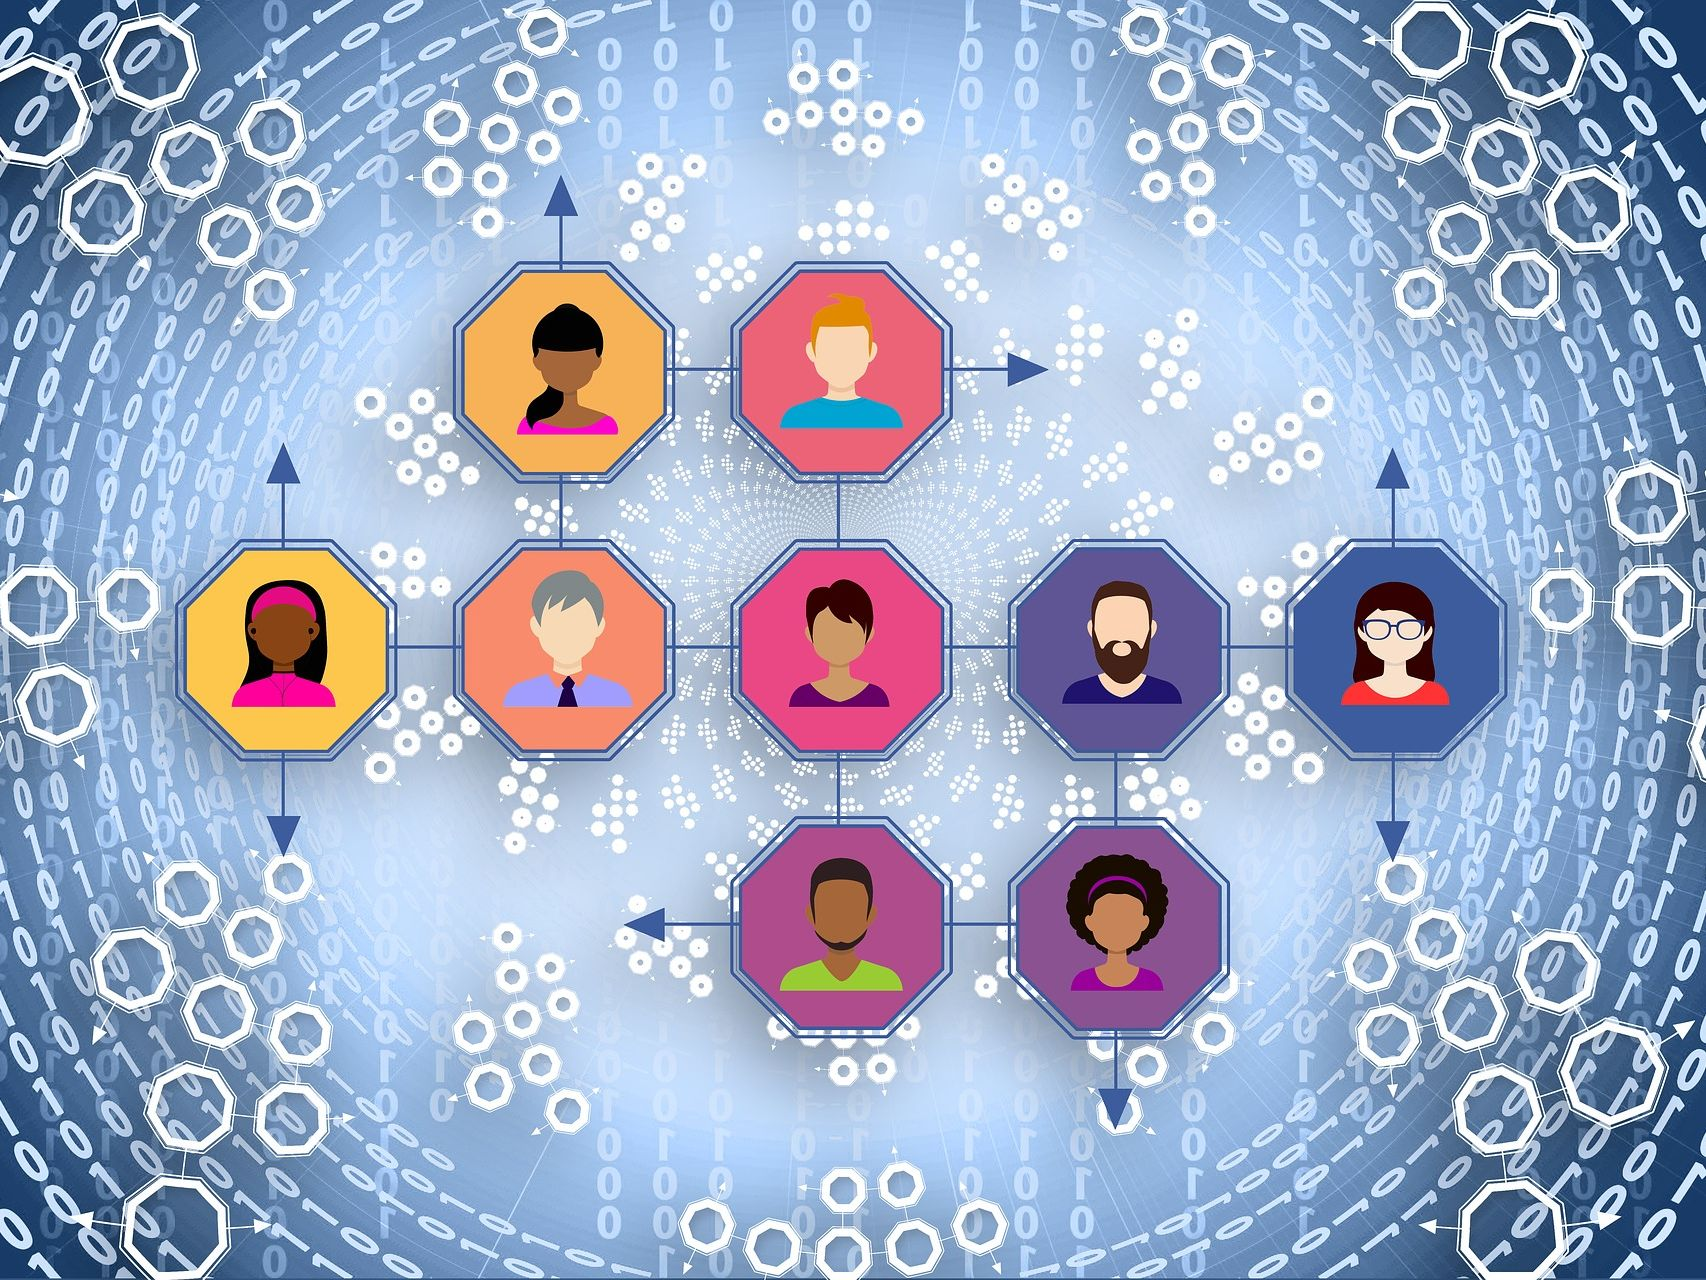 and illustration of a number of user profiles connected together